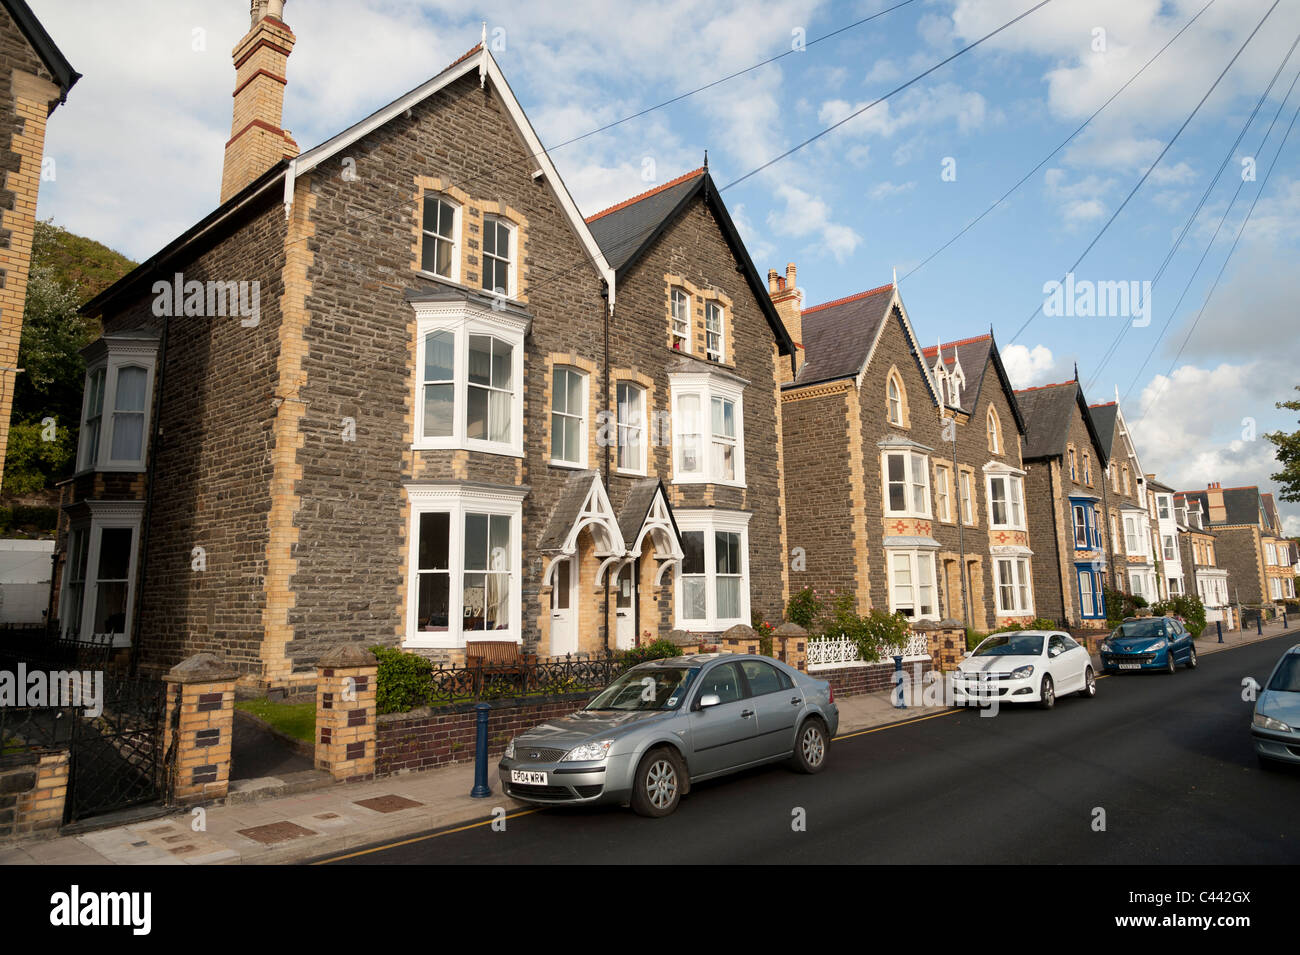 A row of Solidly built 1930's semi detached town houses in Aberystwyth, Ceredigion, Wales UK Stock Photo